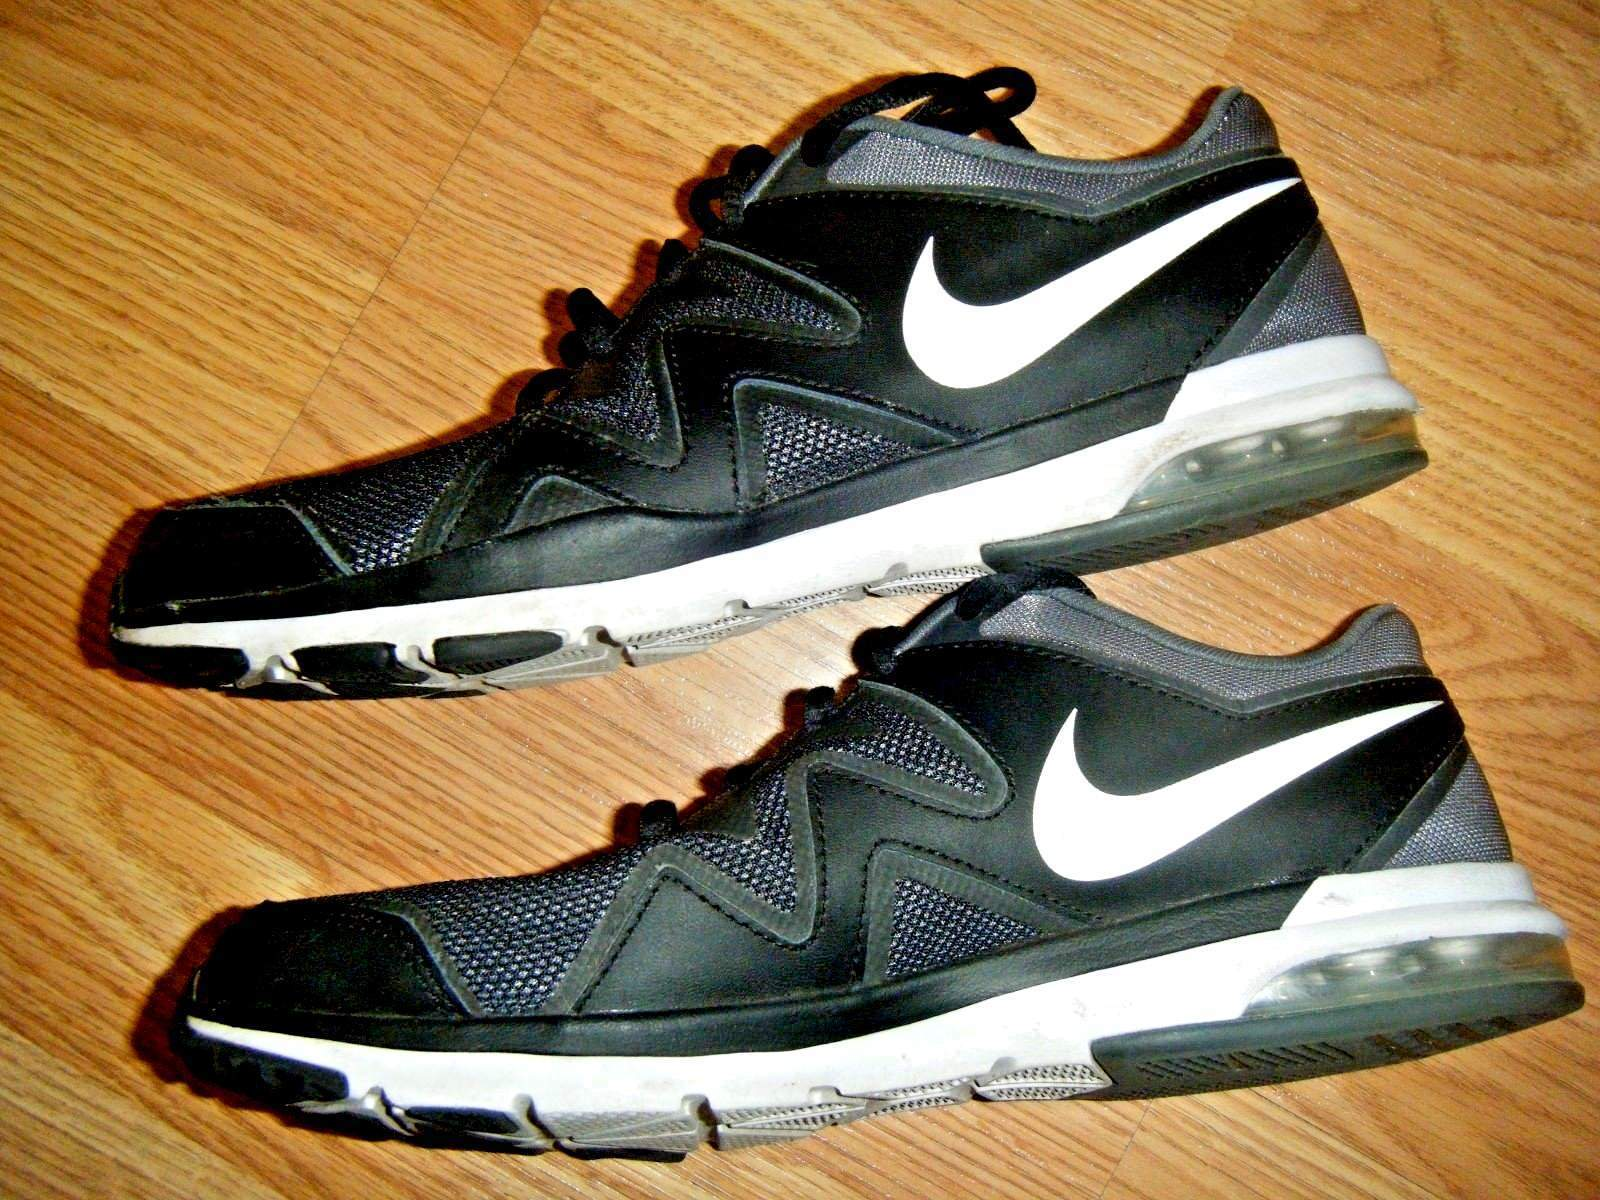 best website ffd96 a5fd8 Nike Black Canvas Low Sneaker Shoes Size 8 and 50 similar items. S l1600